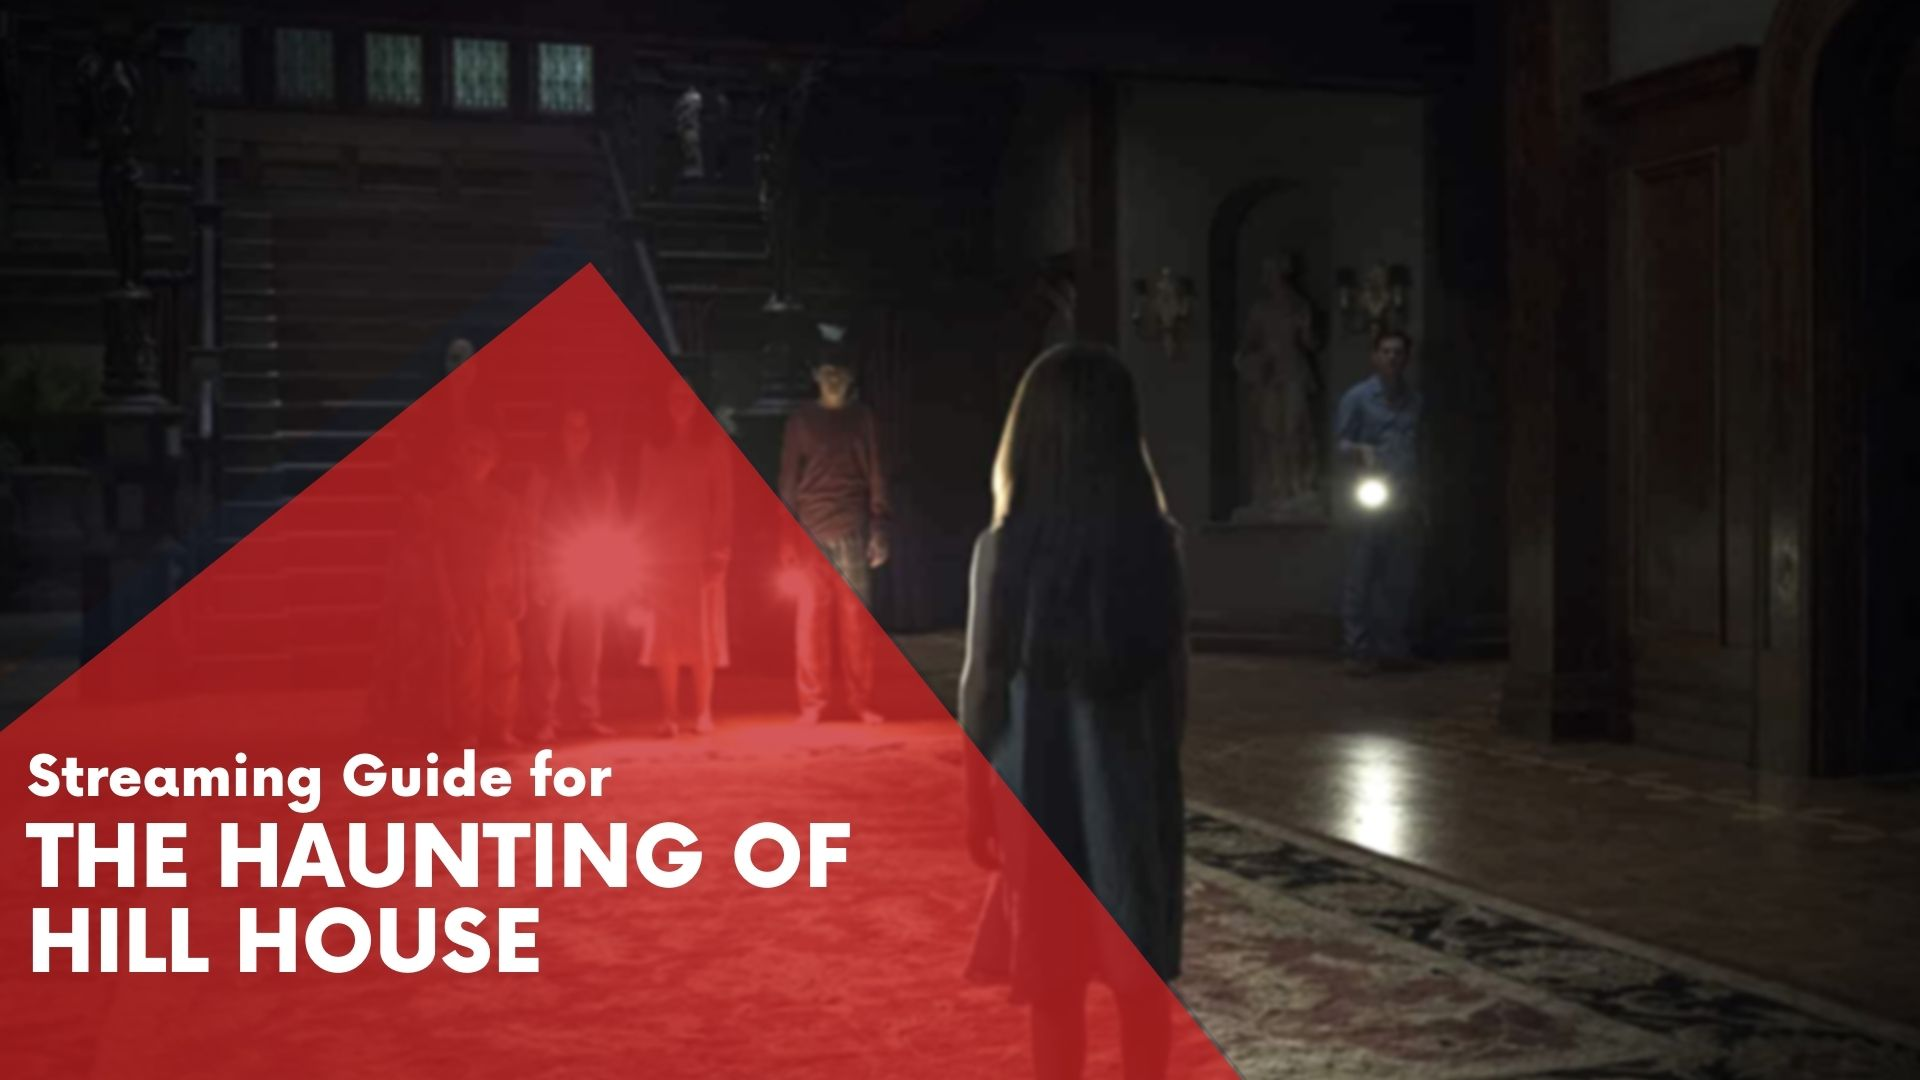 Answering if The Haunting of Hill House is available on Hulu